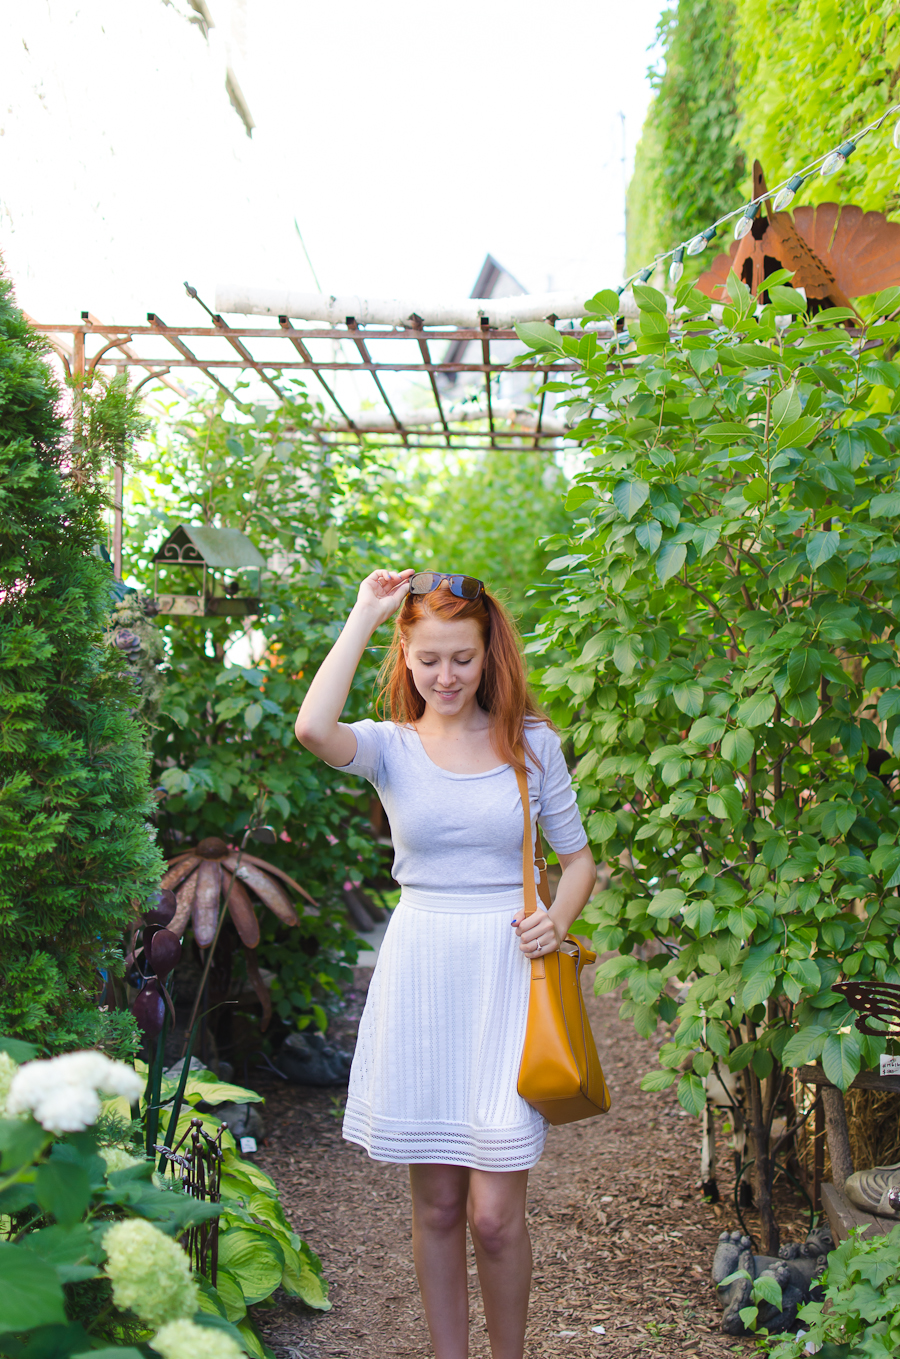 Beautyosaurus Lex- beauty- fashion- style-lifestyle-wisconsin-cedarburg-J.Crew-plakton-skirt-sandals-summer-california electric-gap-red hair